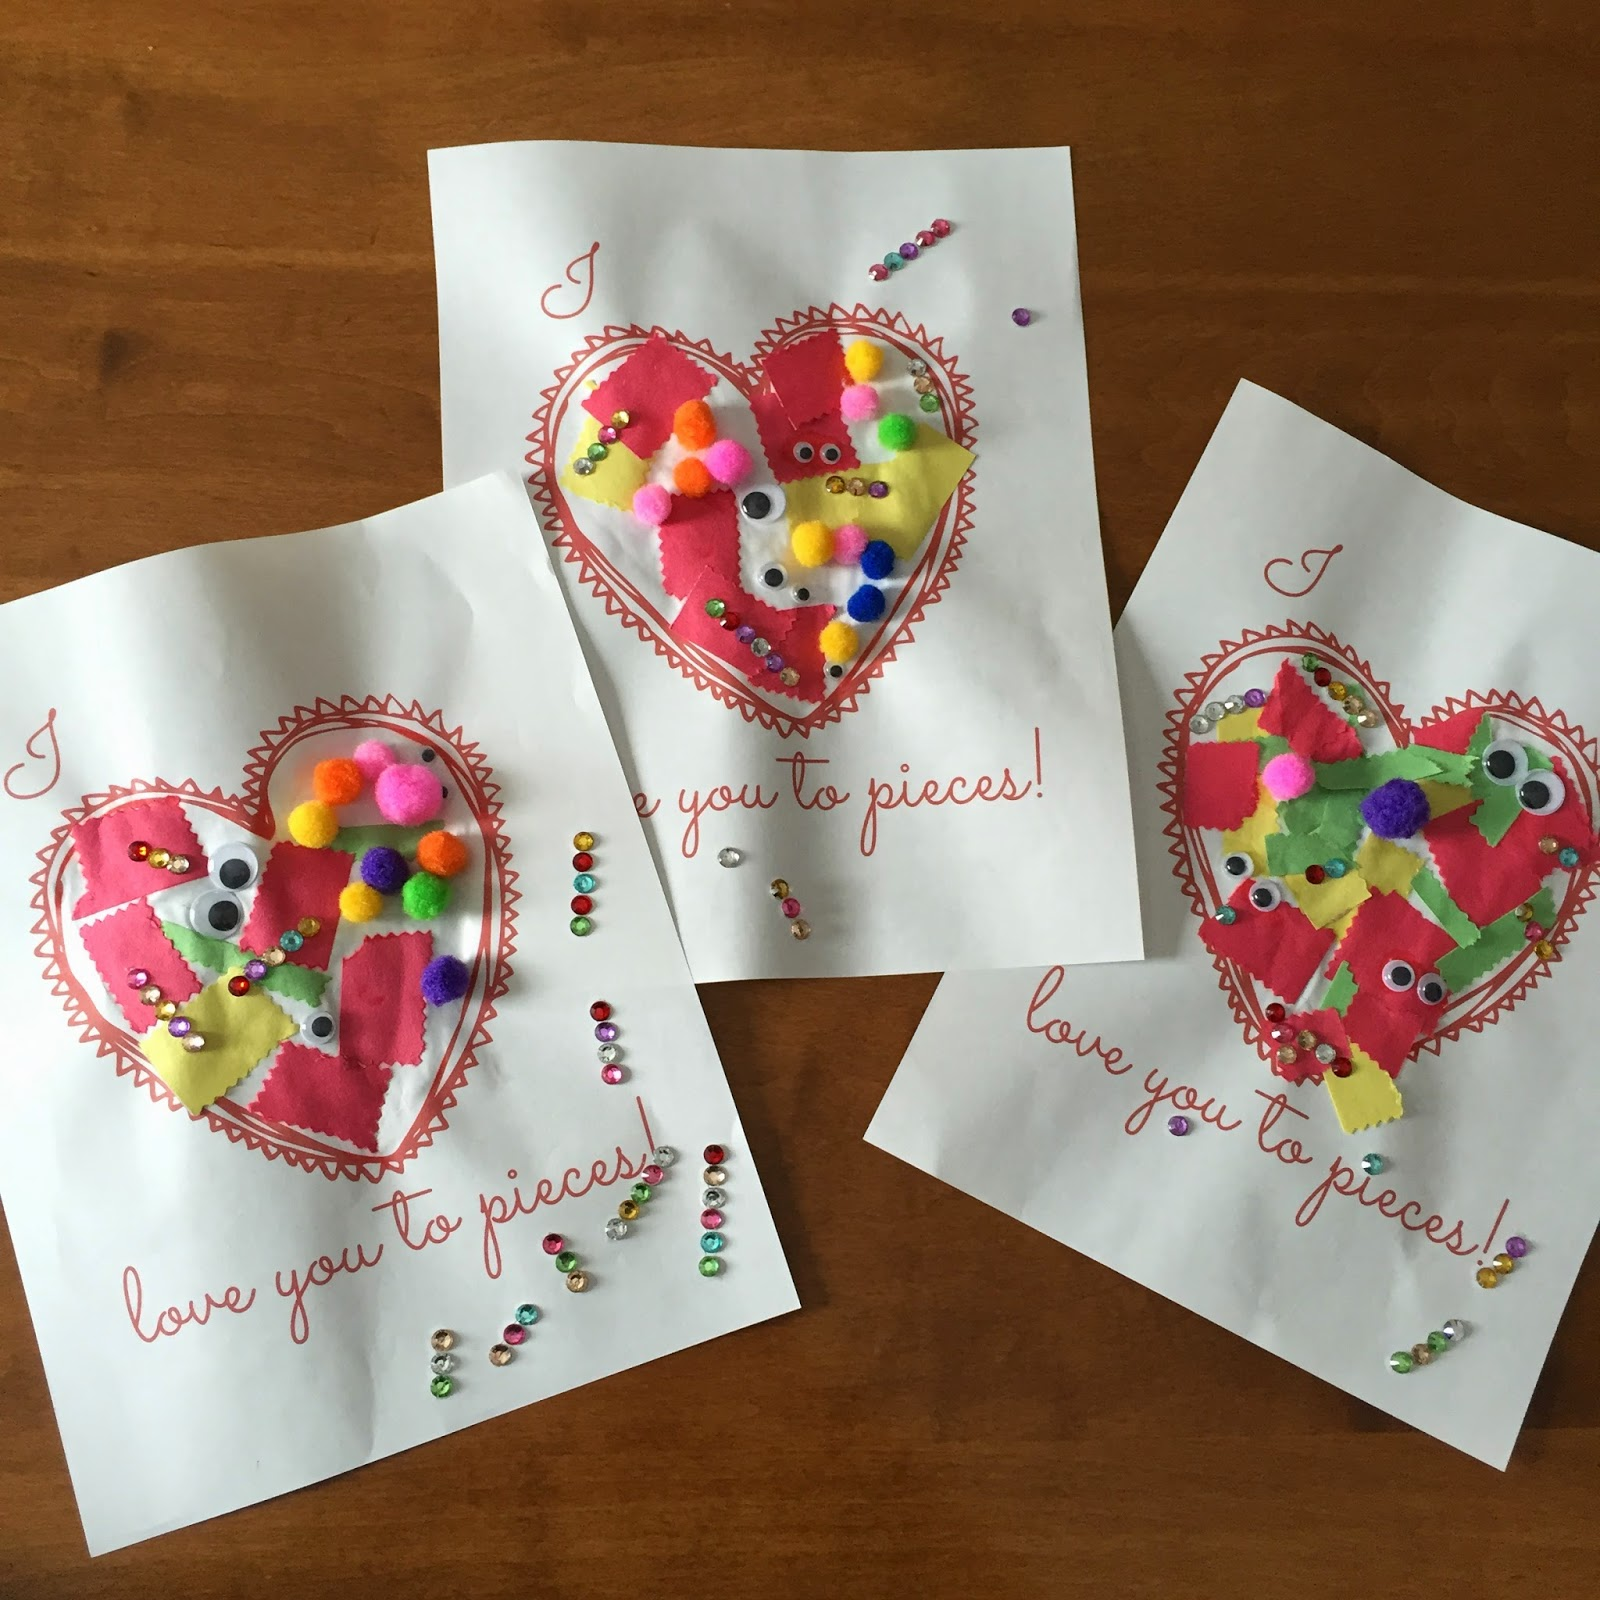 Quick and easy valentine crafts - Here Is A Quick And Easy Diy Valentine Day Craft If You Are A Last Minute Person Like Me My Daughter Loved Making A Couple Of These For Her Daddy And